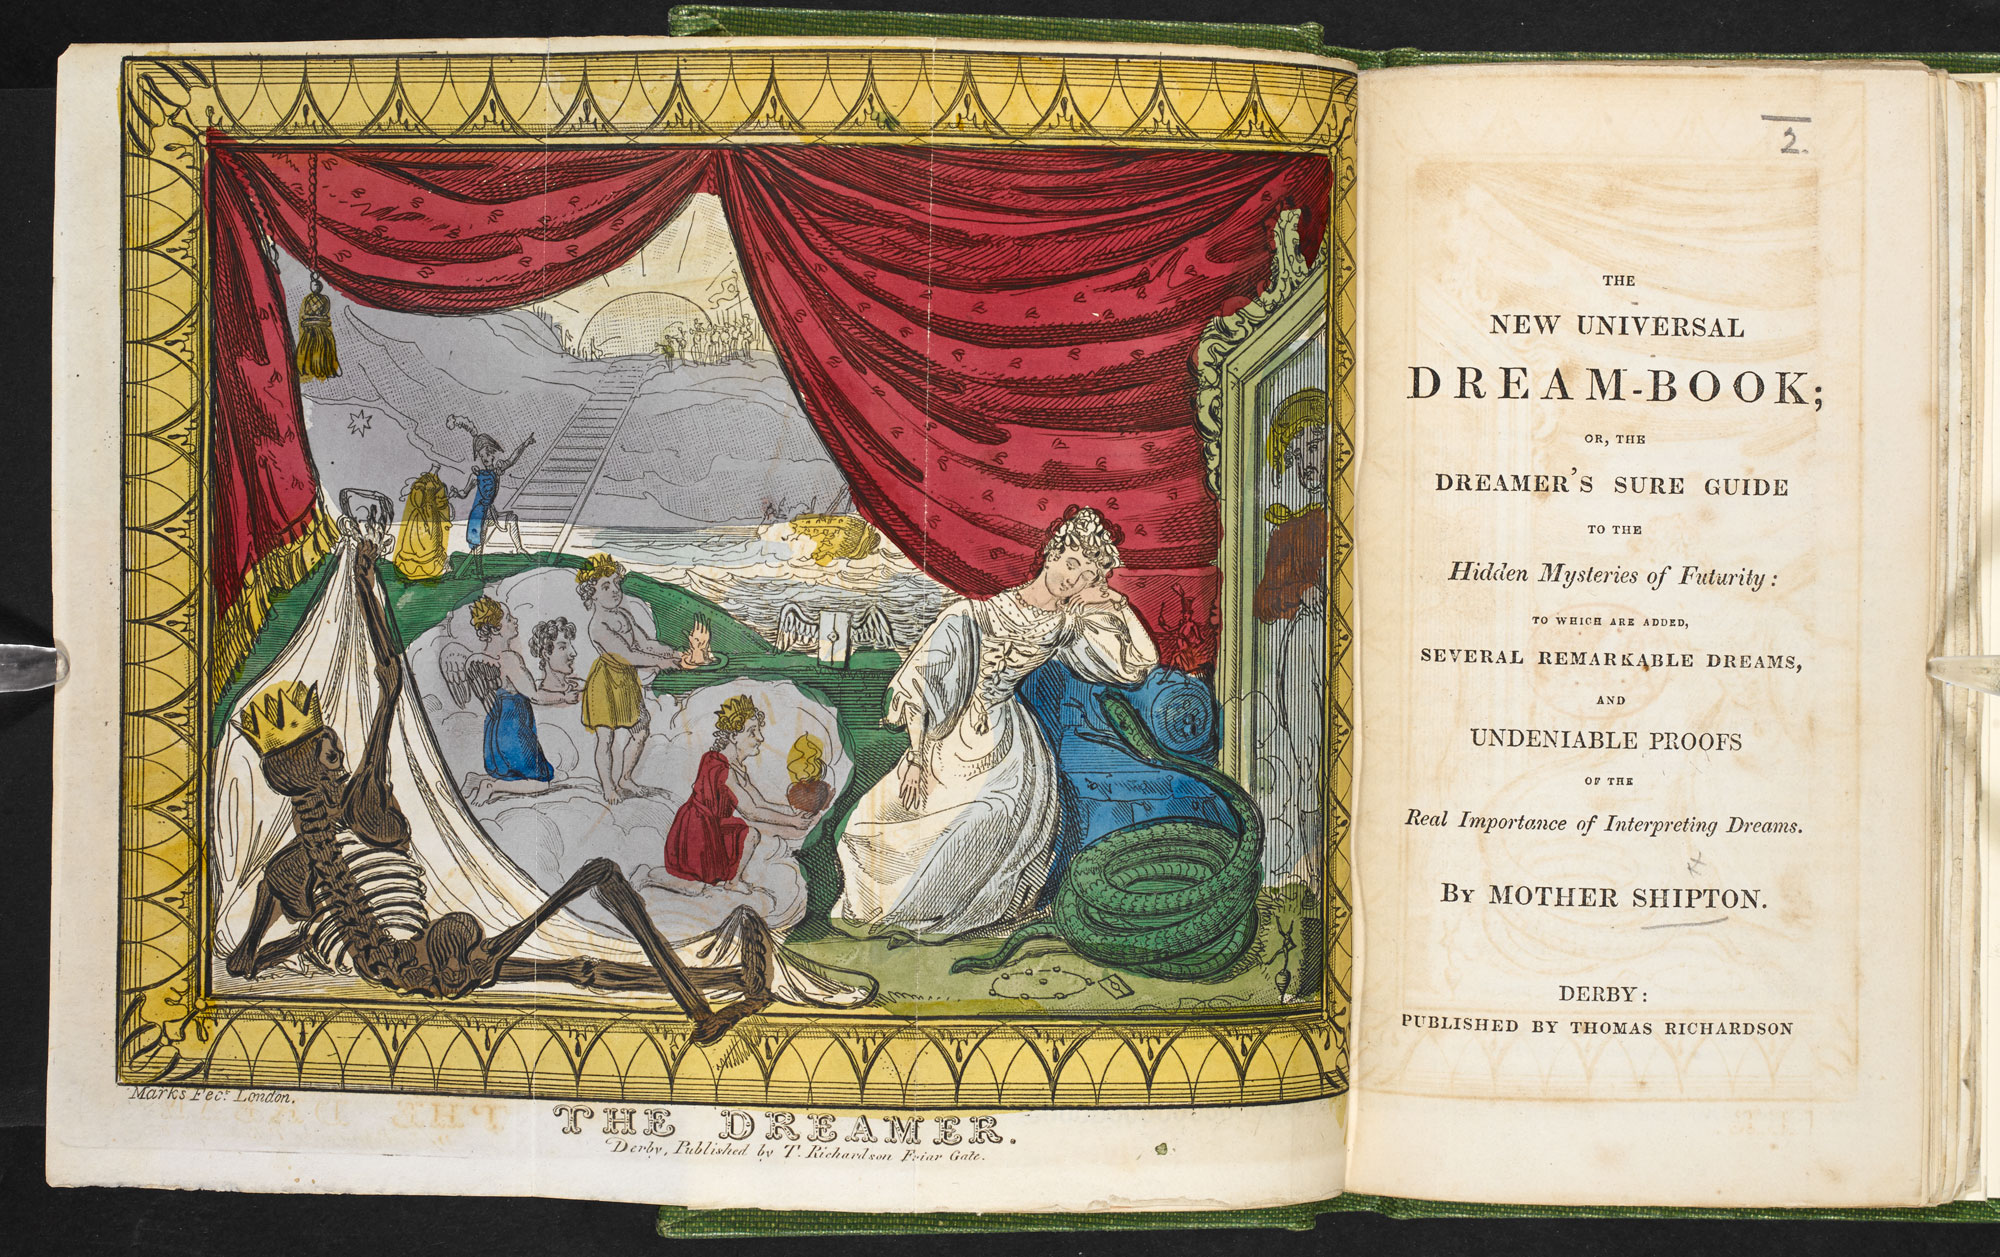 The New Universal Dream-book  [page: fold-out frontispiece and title page]